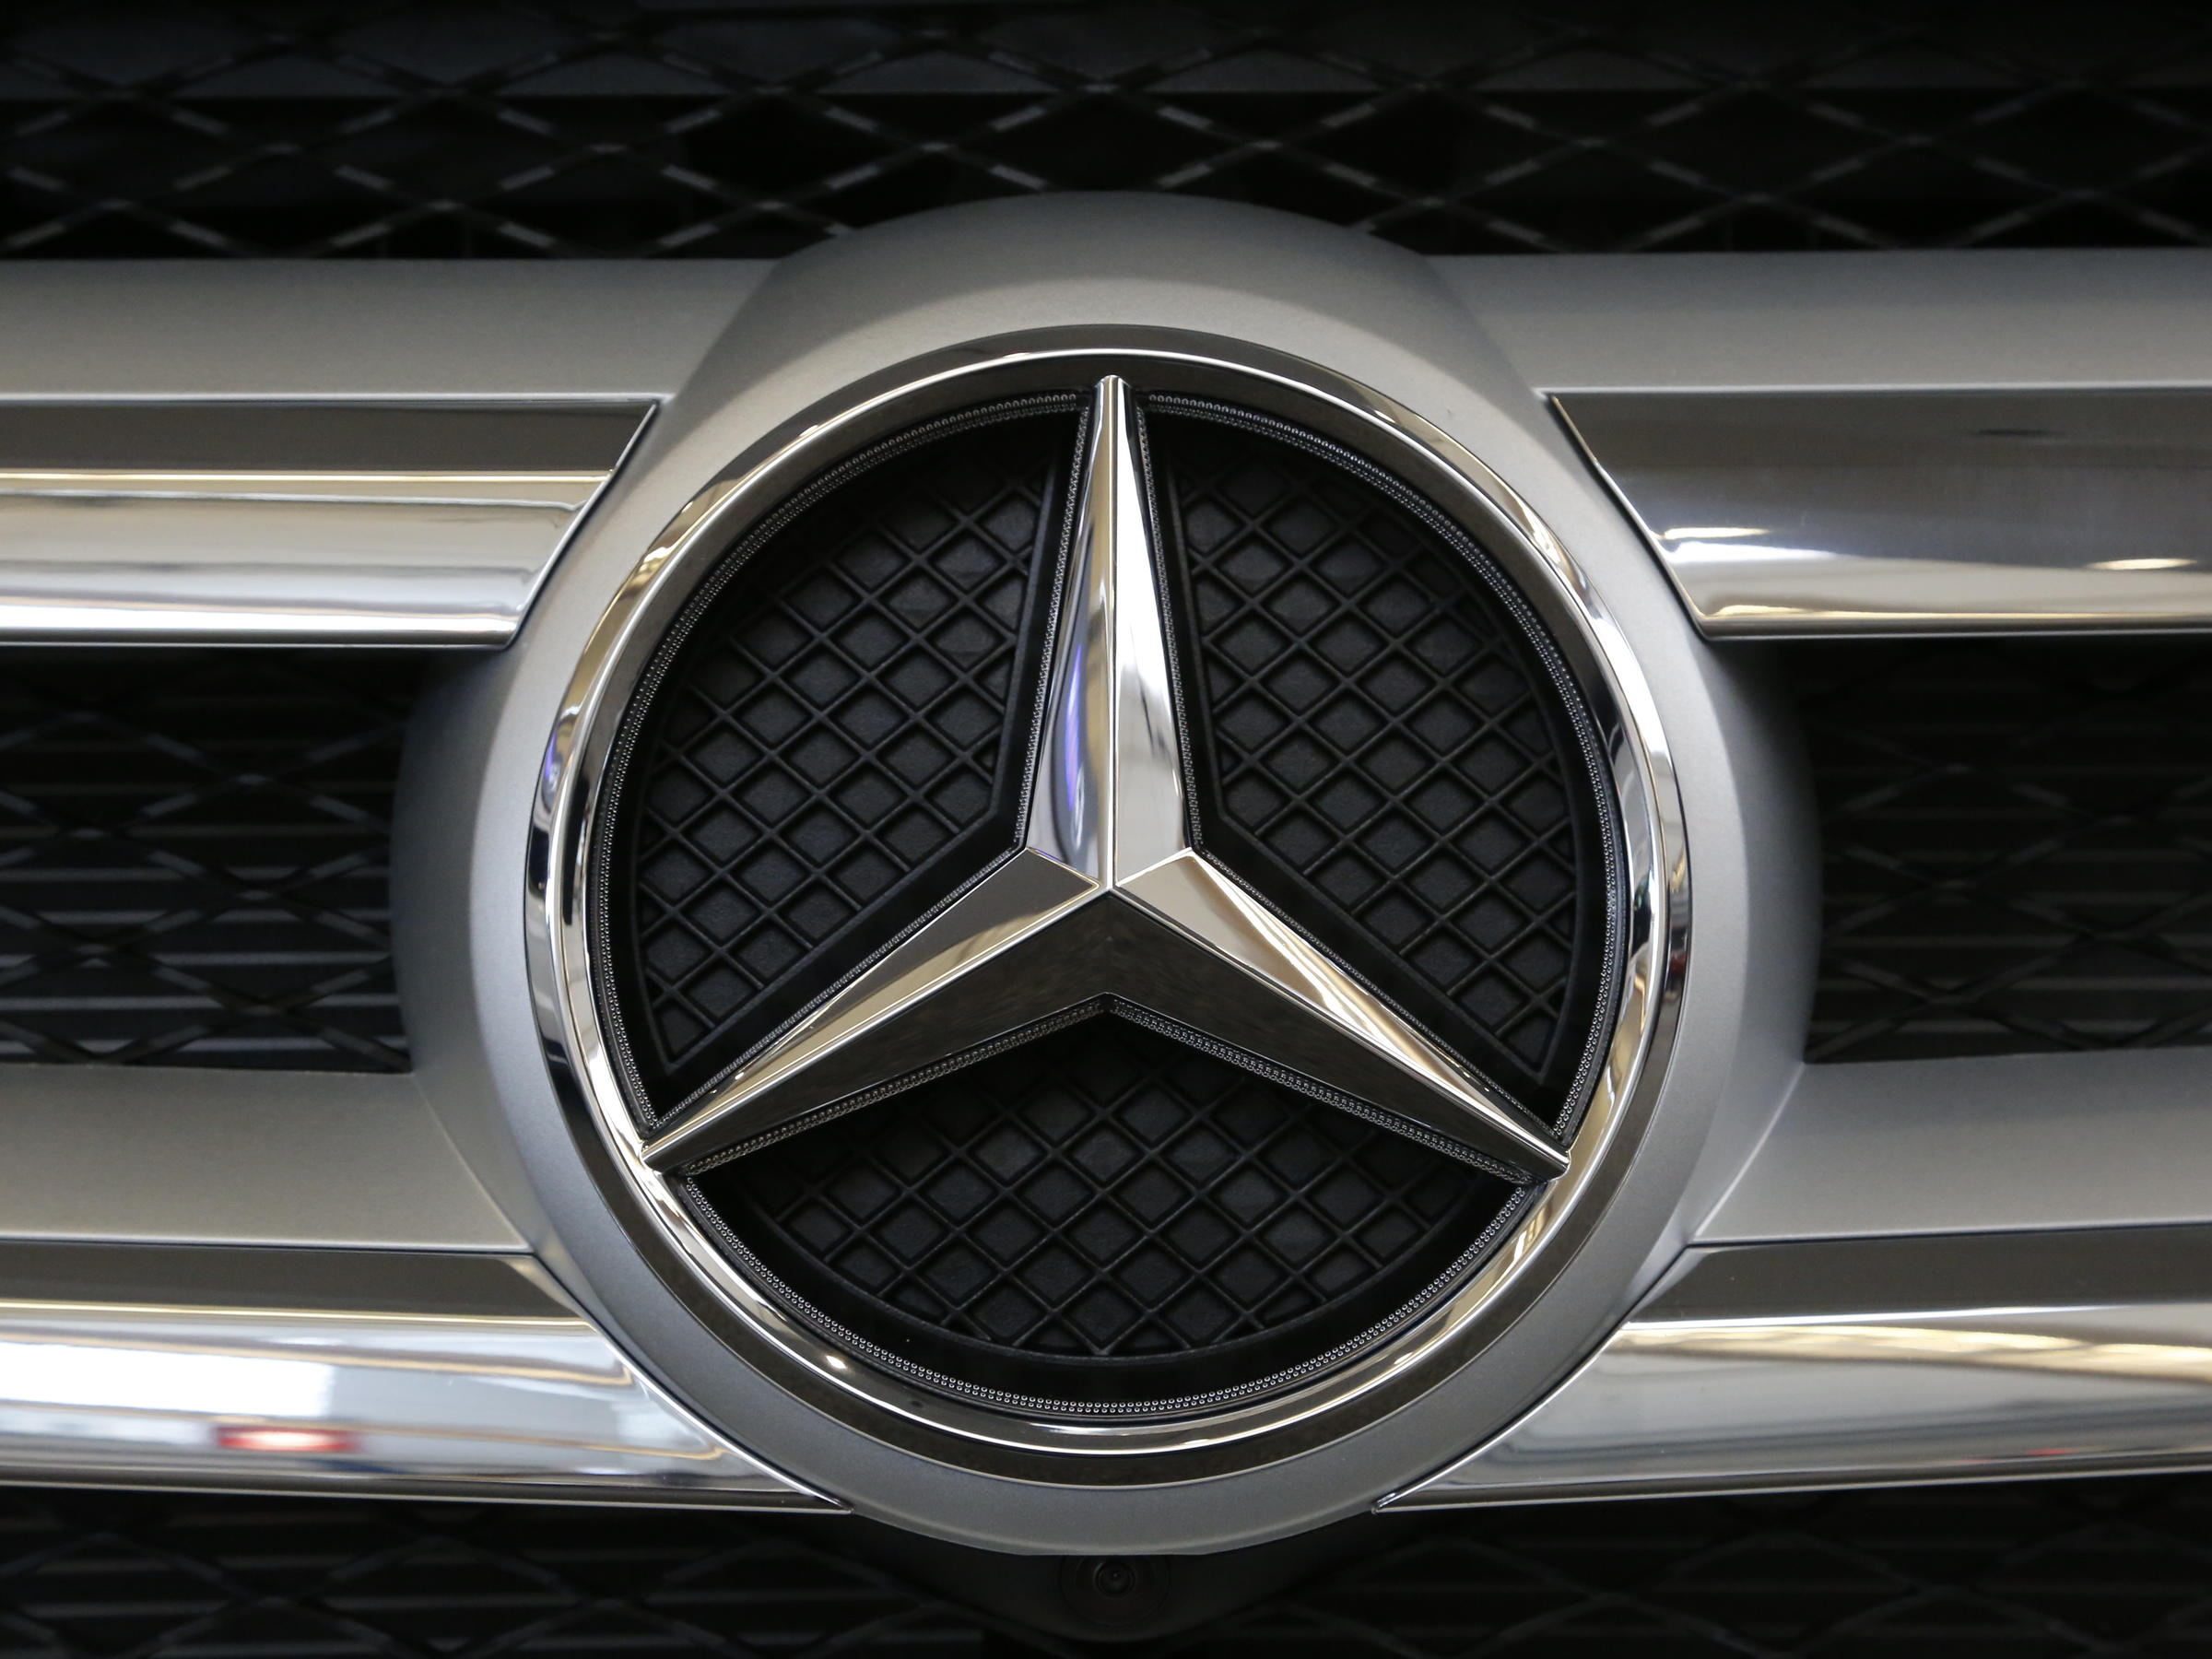 Mercedes-Benz apologized to China for posting a Dalai Lama quote photo